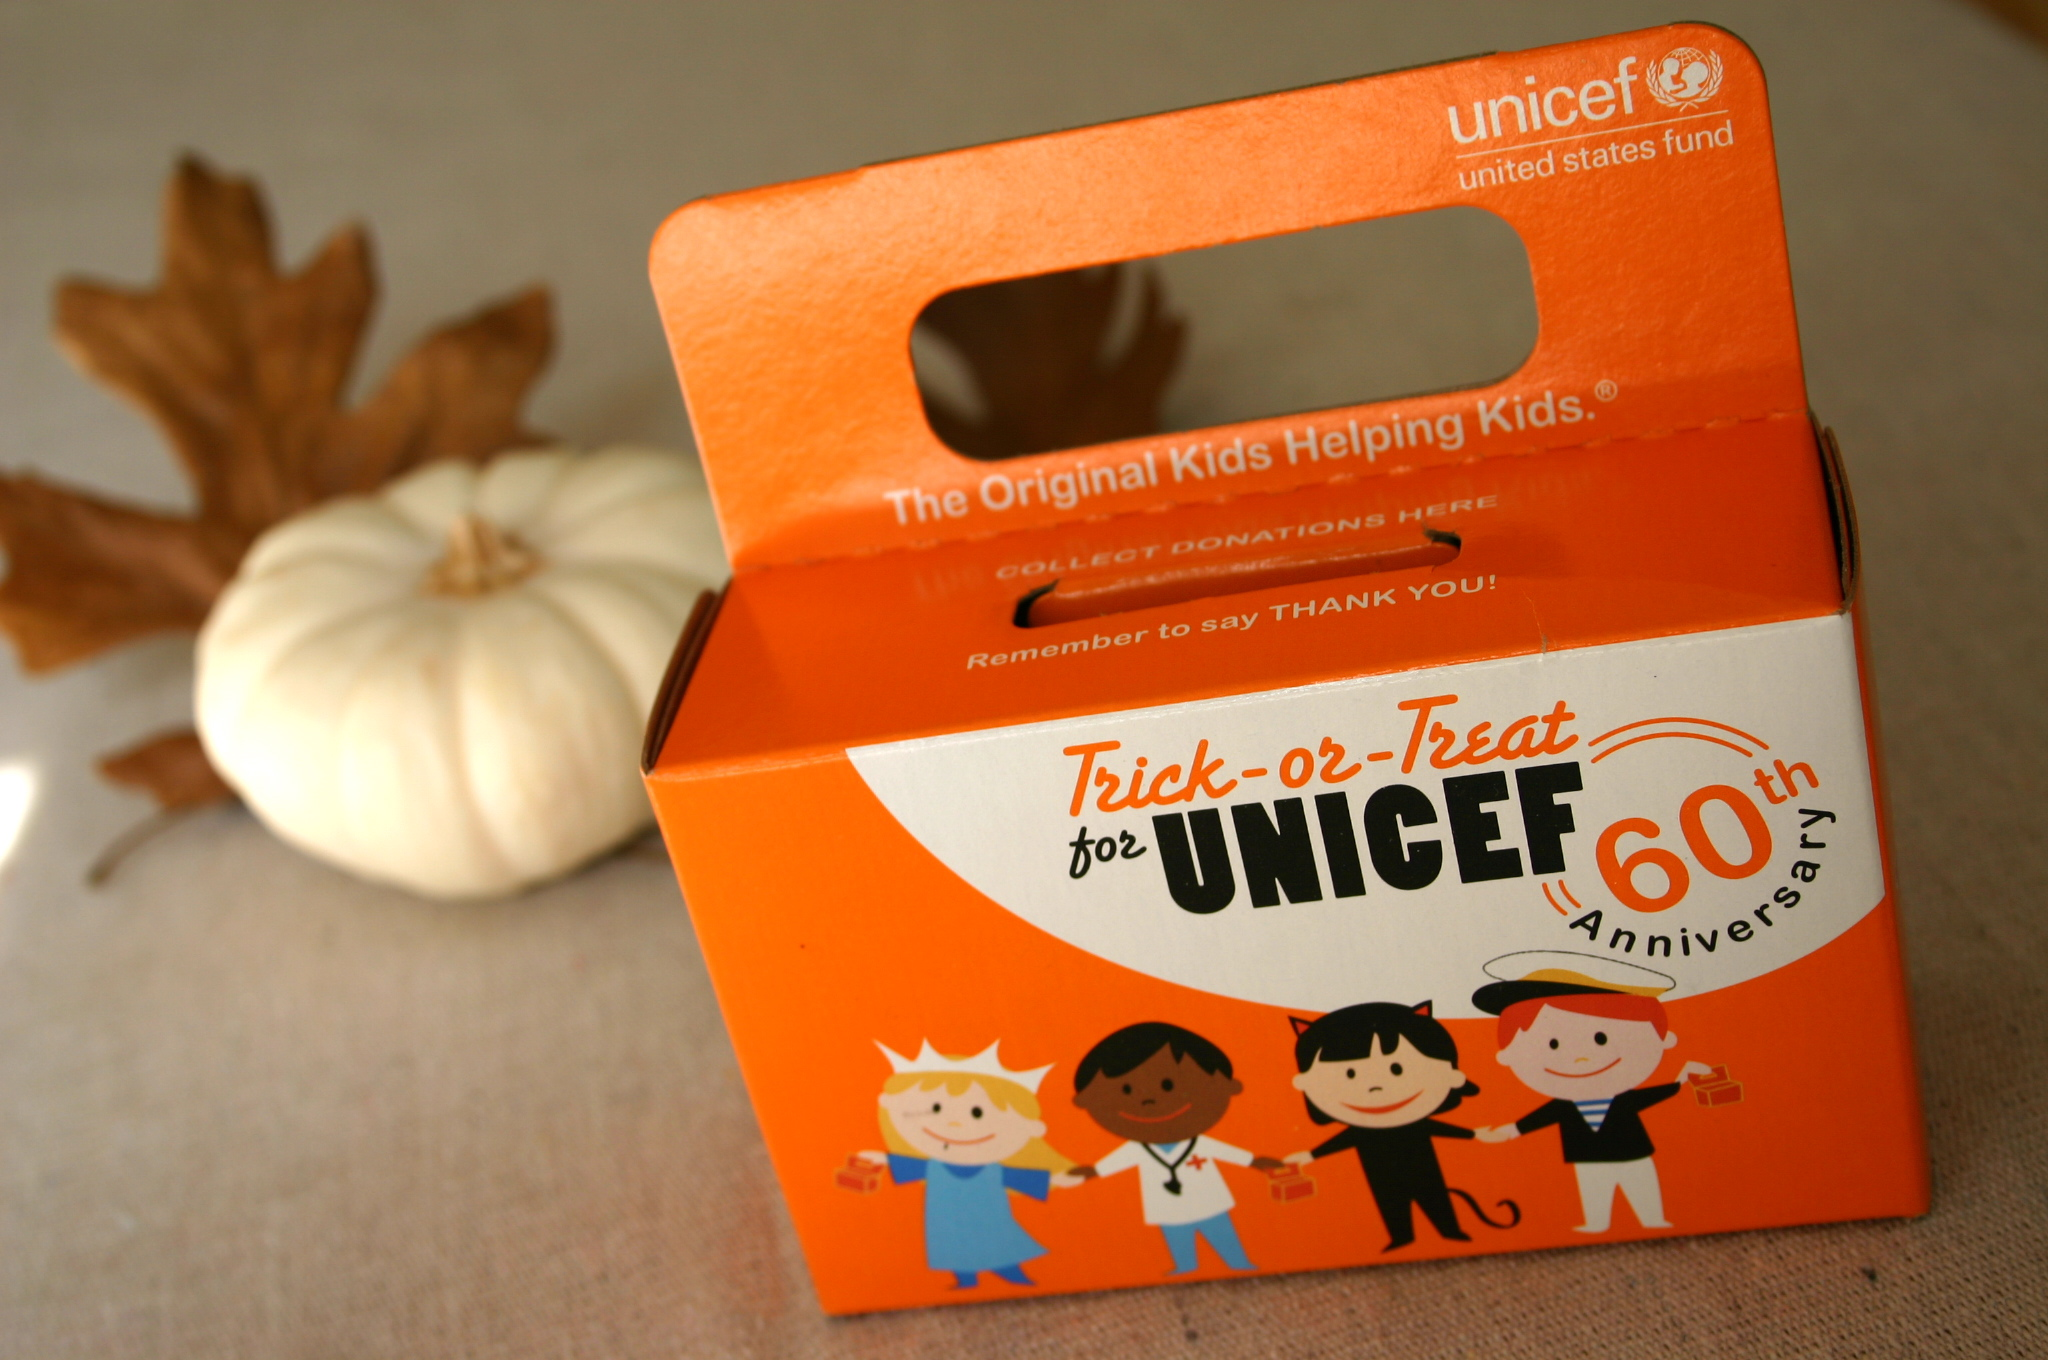 Children love to help other children - it makes them feel good! Help your child collect for Unicef this year and start a tradition with real meaning.